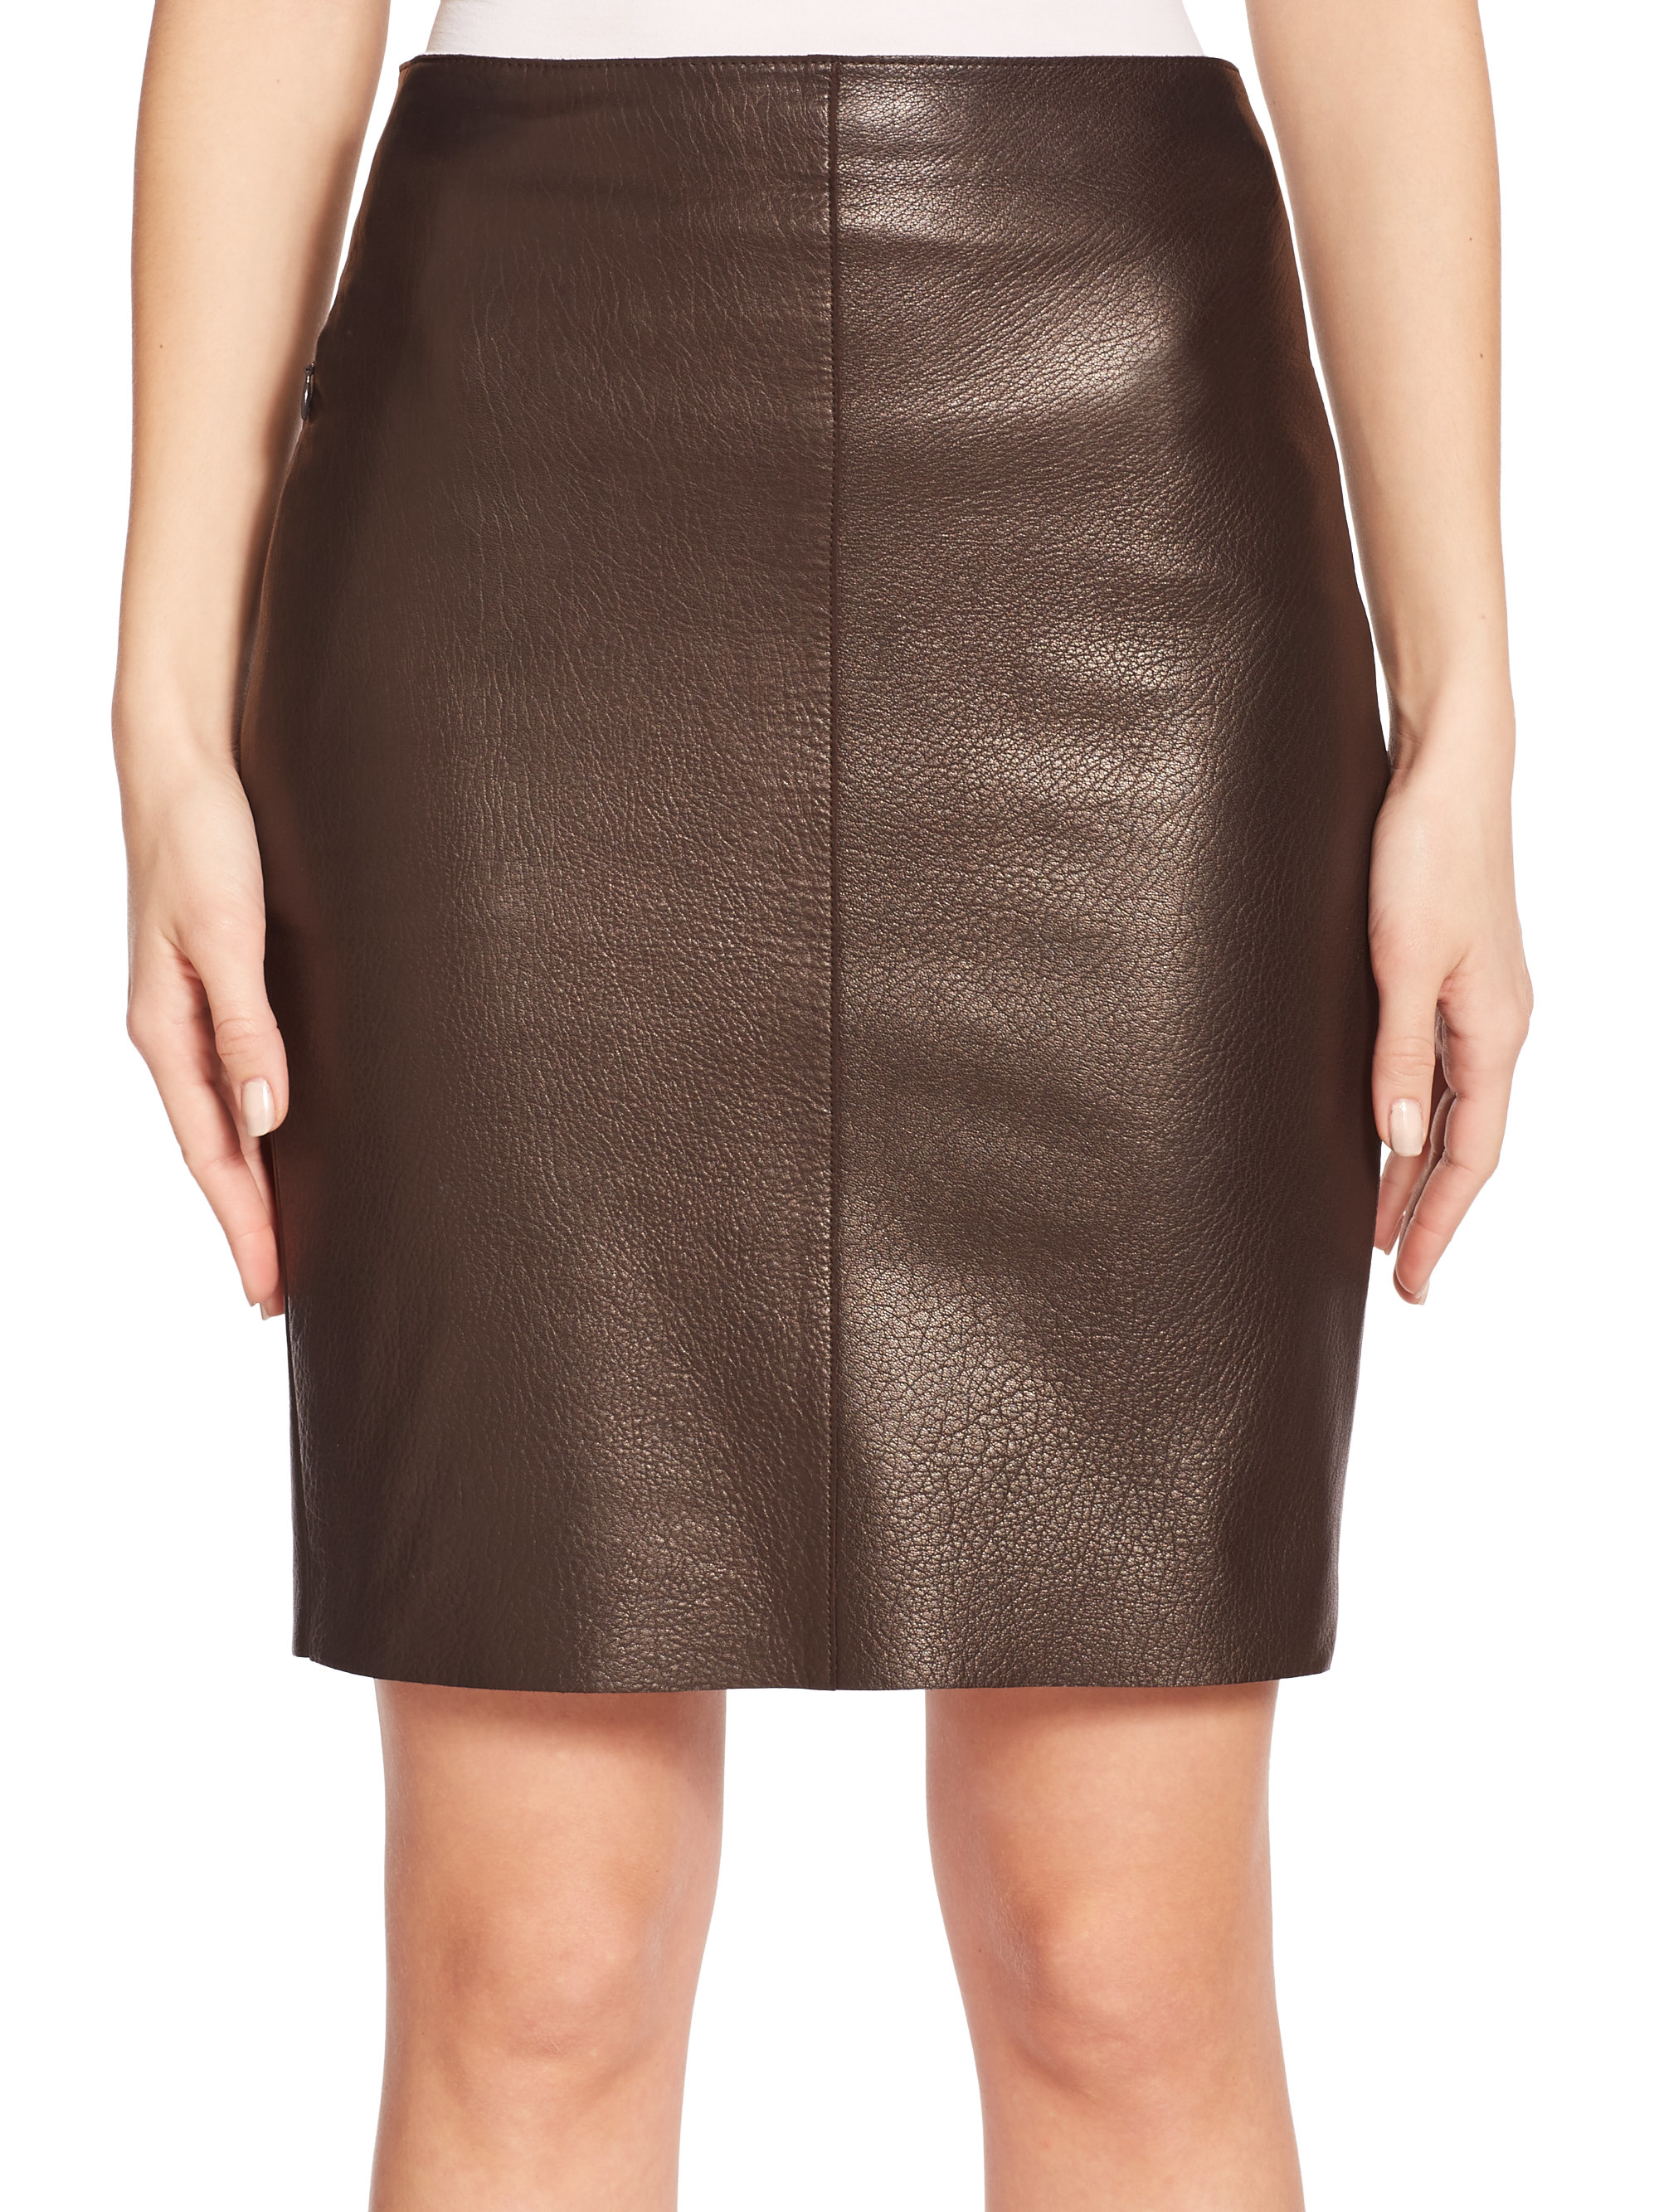 Shop our Collection of Women's Brown Skirts at onelainsex.ml for the Latest Designer Brands & Styles. FREE SHIPPING AVAILABLE! I.N.C. Ponte Pencil Skirt, Created for Macy's BCBGMAXAZRIA Faux-Leather Flounced Skirt.